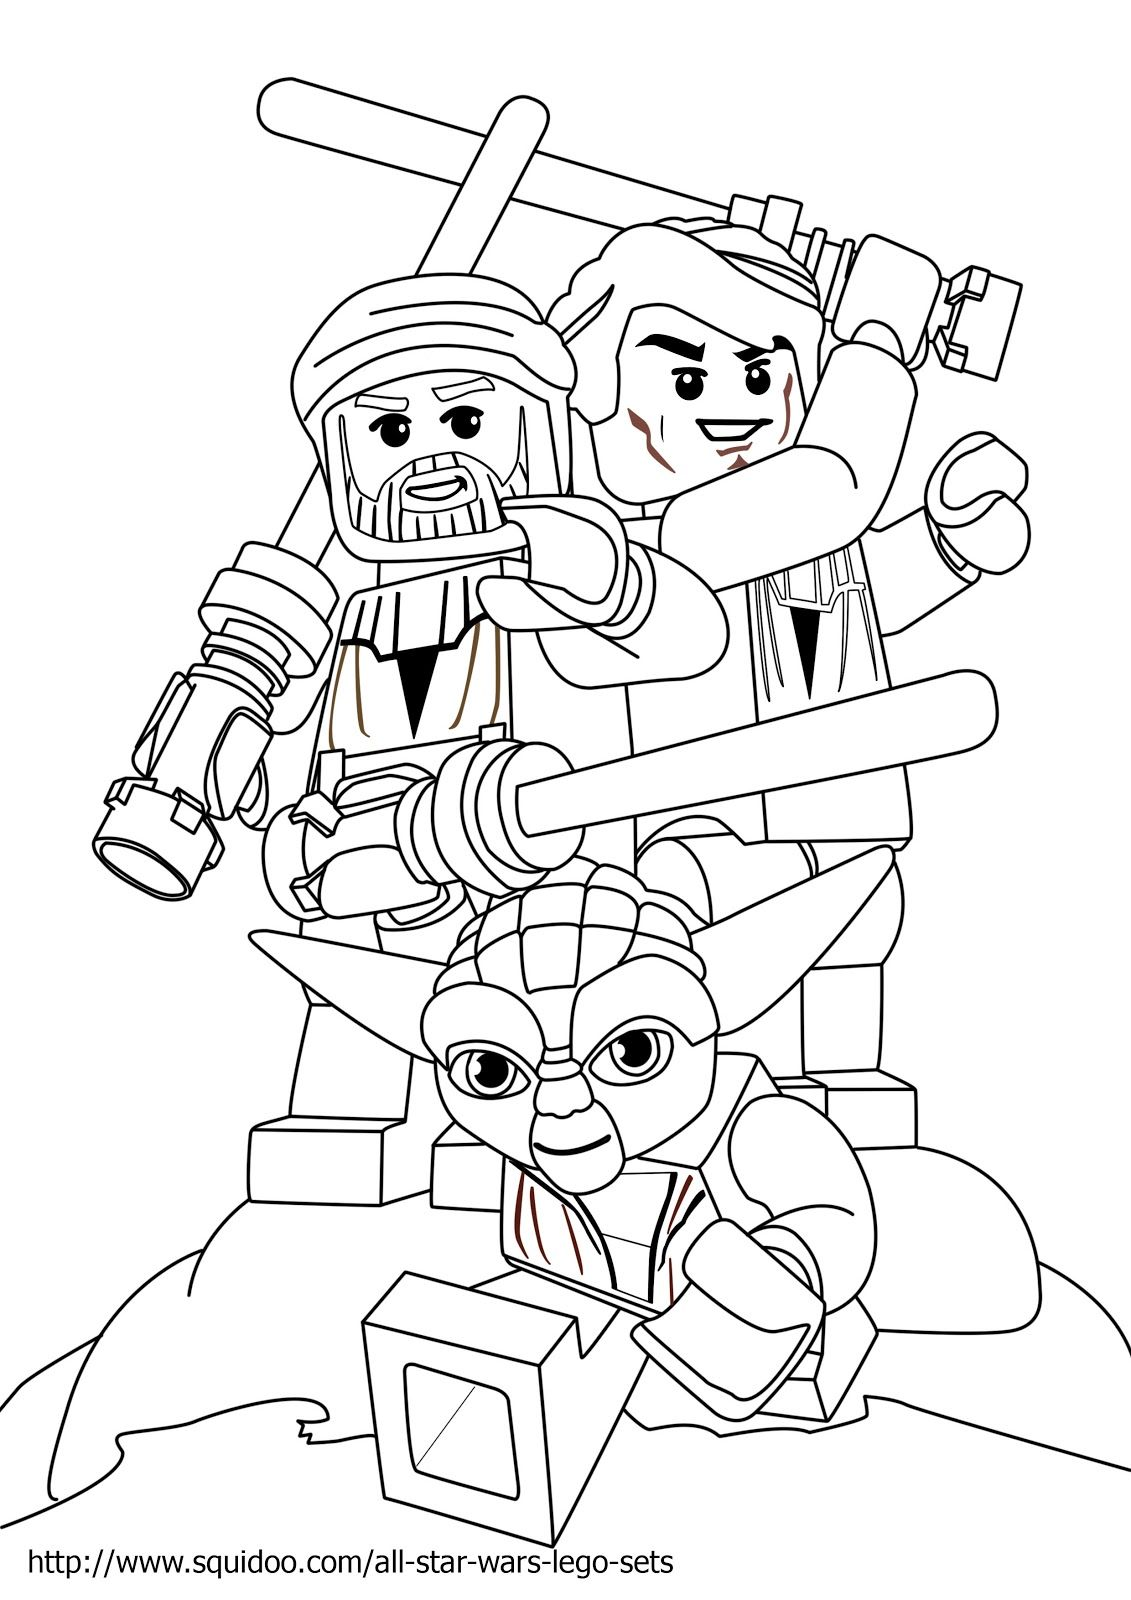 star trek coloring pages | Star+wars+lego+coloring+pages+to+print ...